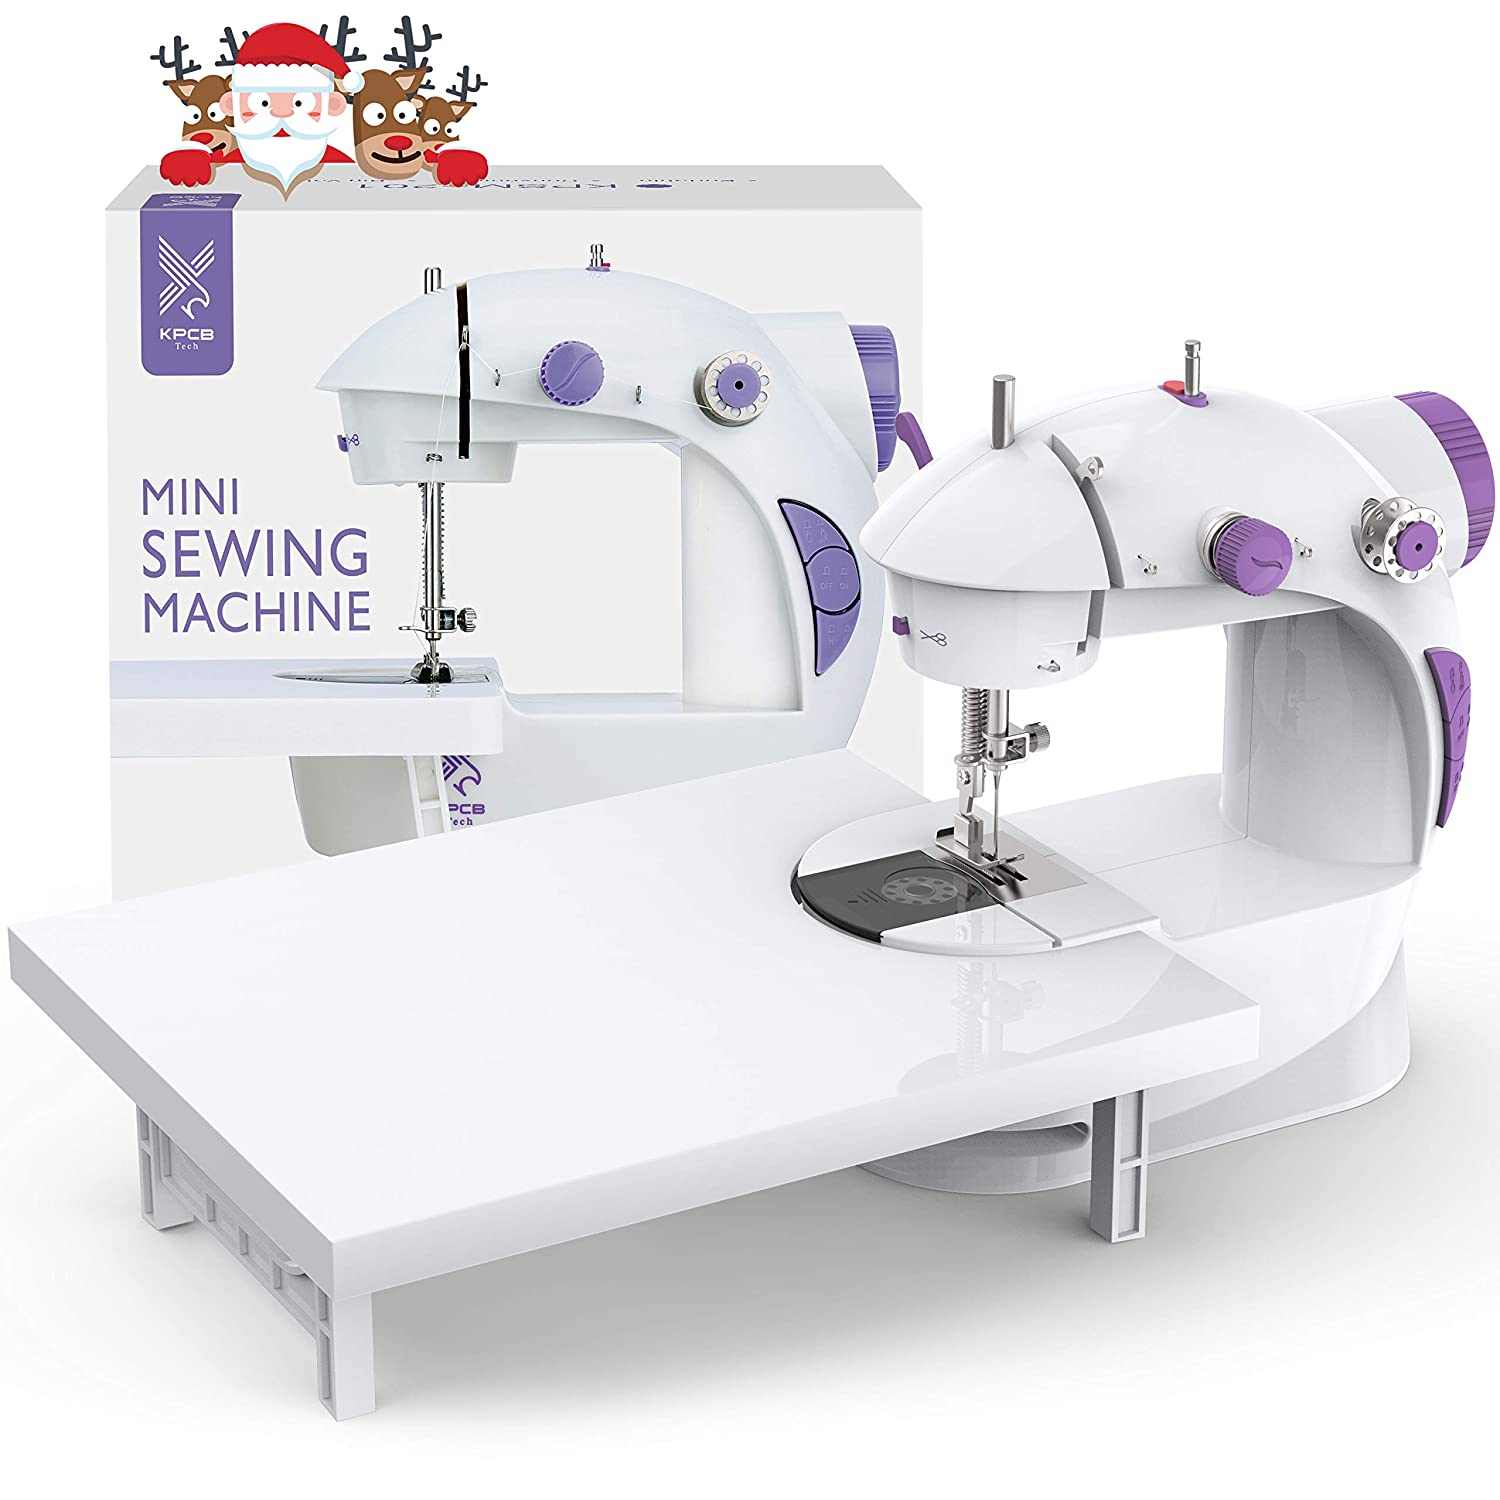 KPCB 201 Mini Sewing Machine with Extension Table ...